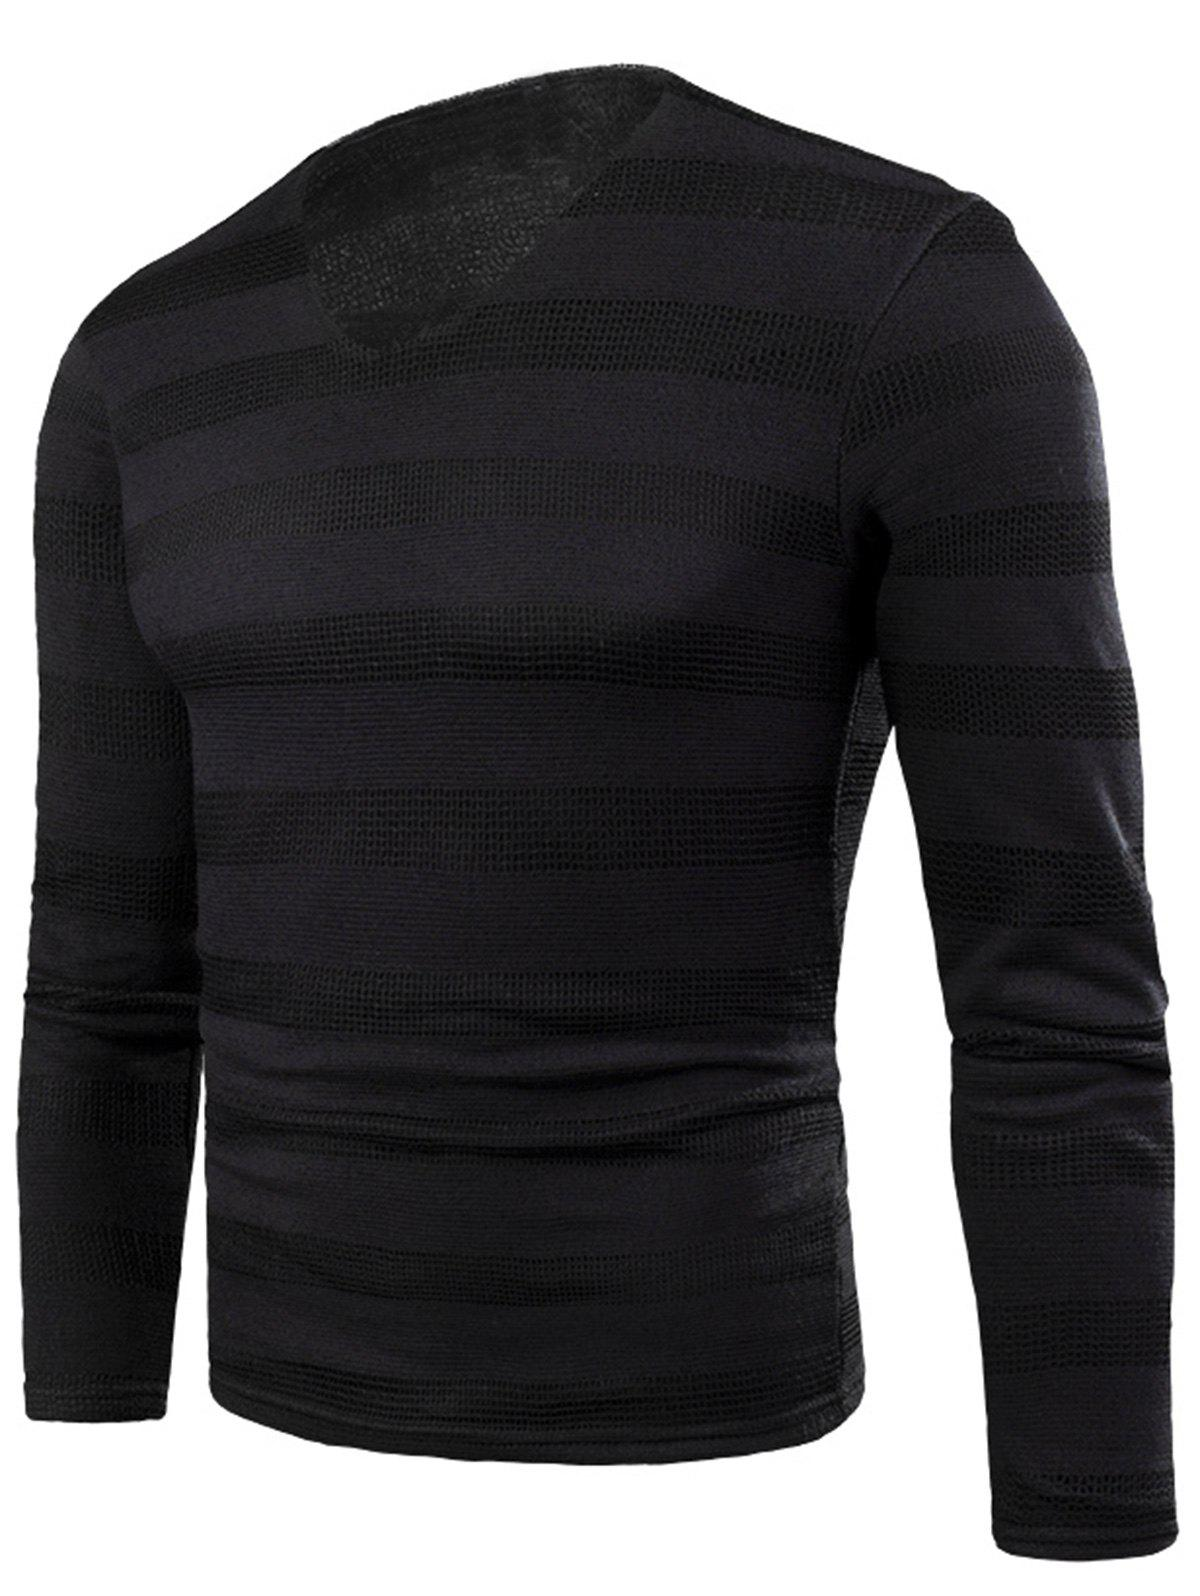 Store V Neck Stripe Knitted Fleece T-shirt